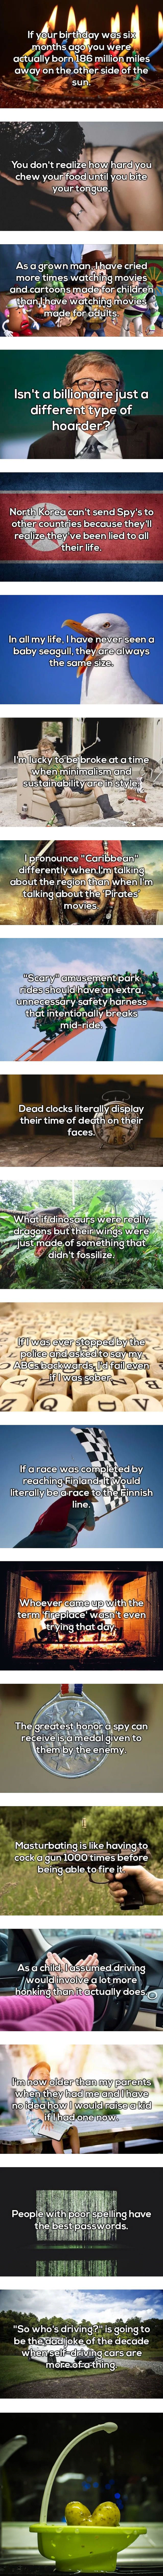 Pin By Daphne On News Funny Weird Facts Best Funny Pictures